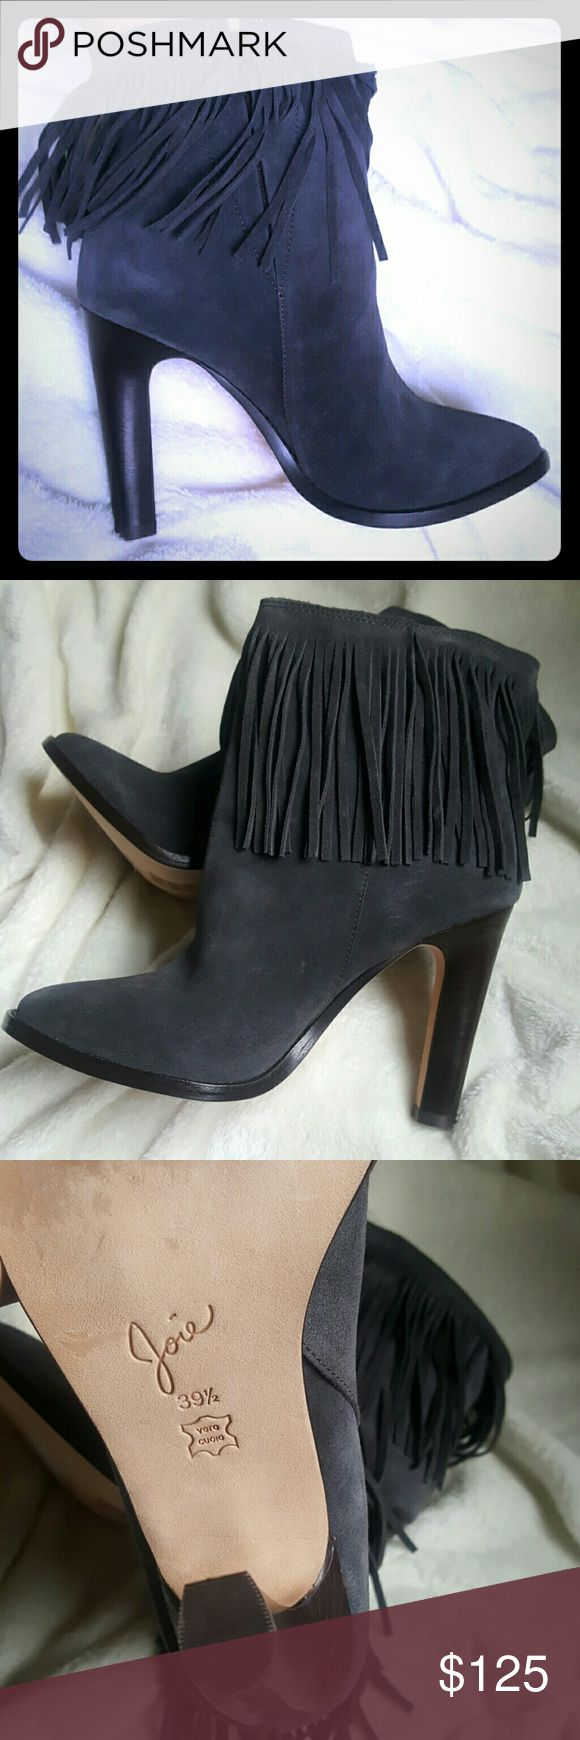 """Joie heeled fringe boots Cambrie style. Round toe ankle boots with fringe accents at uppers. 4"""" heel. Leather upper,lining and sole. Concealed elastisized gores at sides for easy pull-on (no zippers). Perfect condition NWT. Joie Shoes Heeled Boots"""